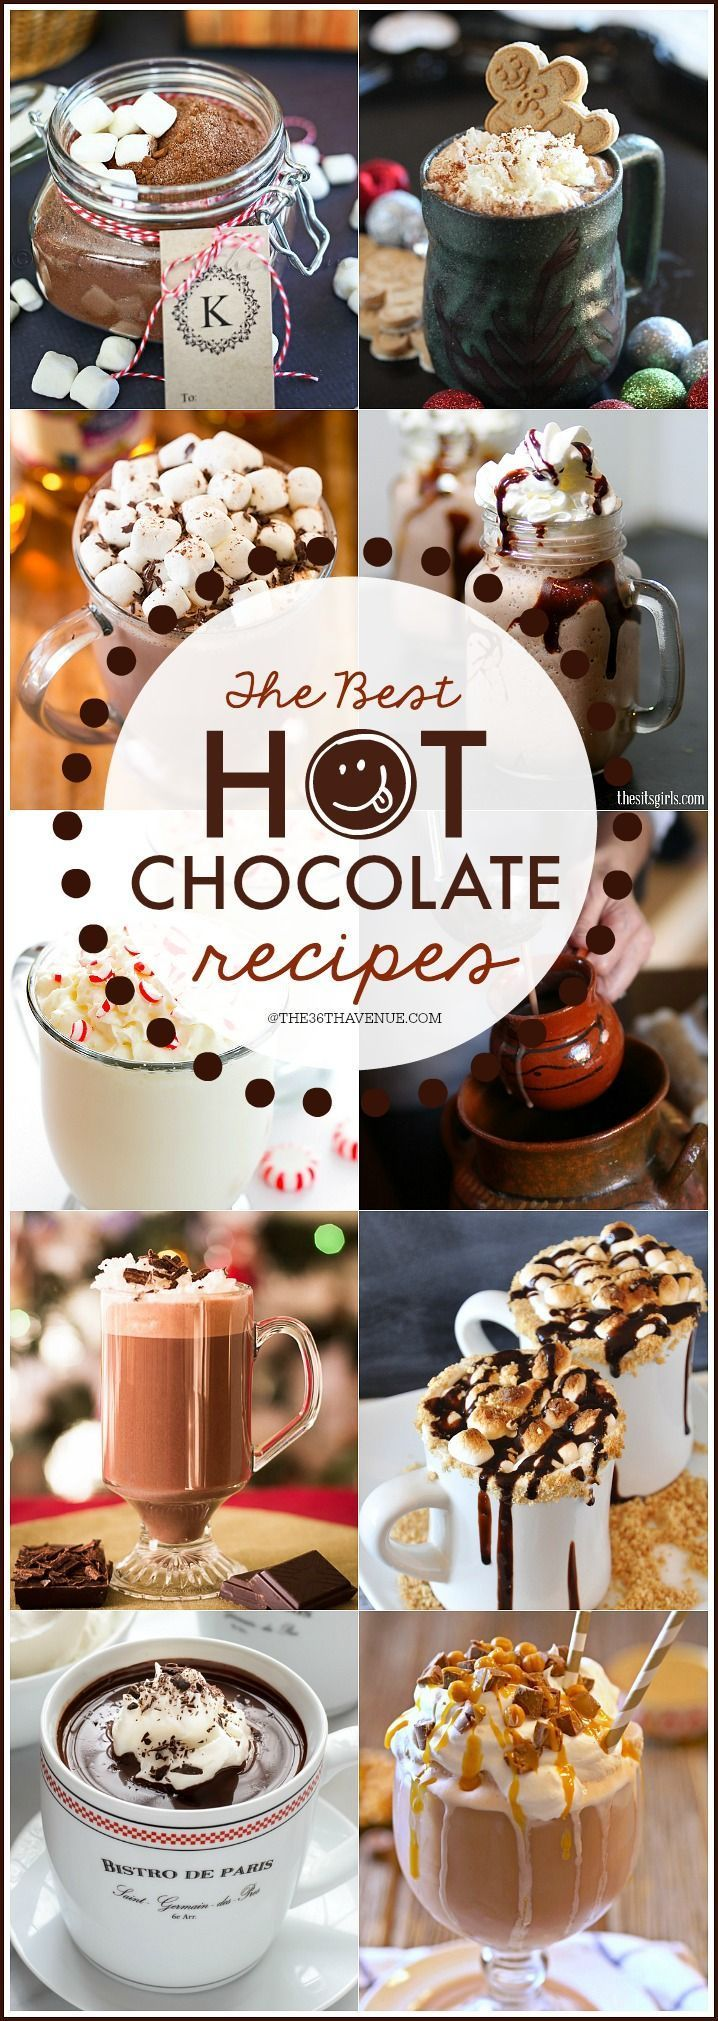 Making hot chocolate for a crowd - Edible Christmas Gifts Frozen Hot Chocolatehomemade